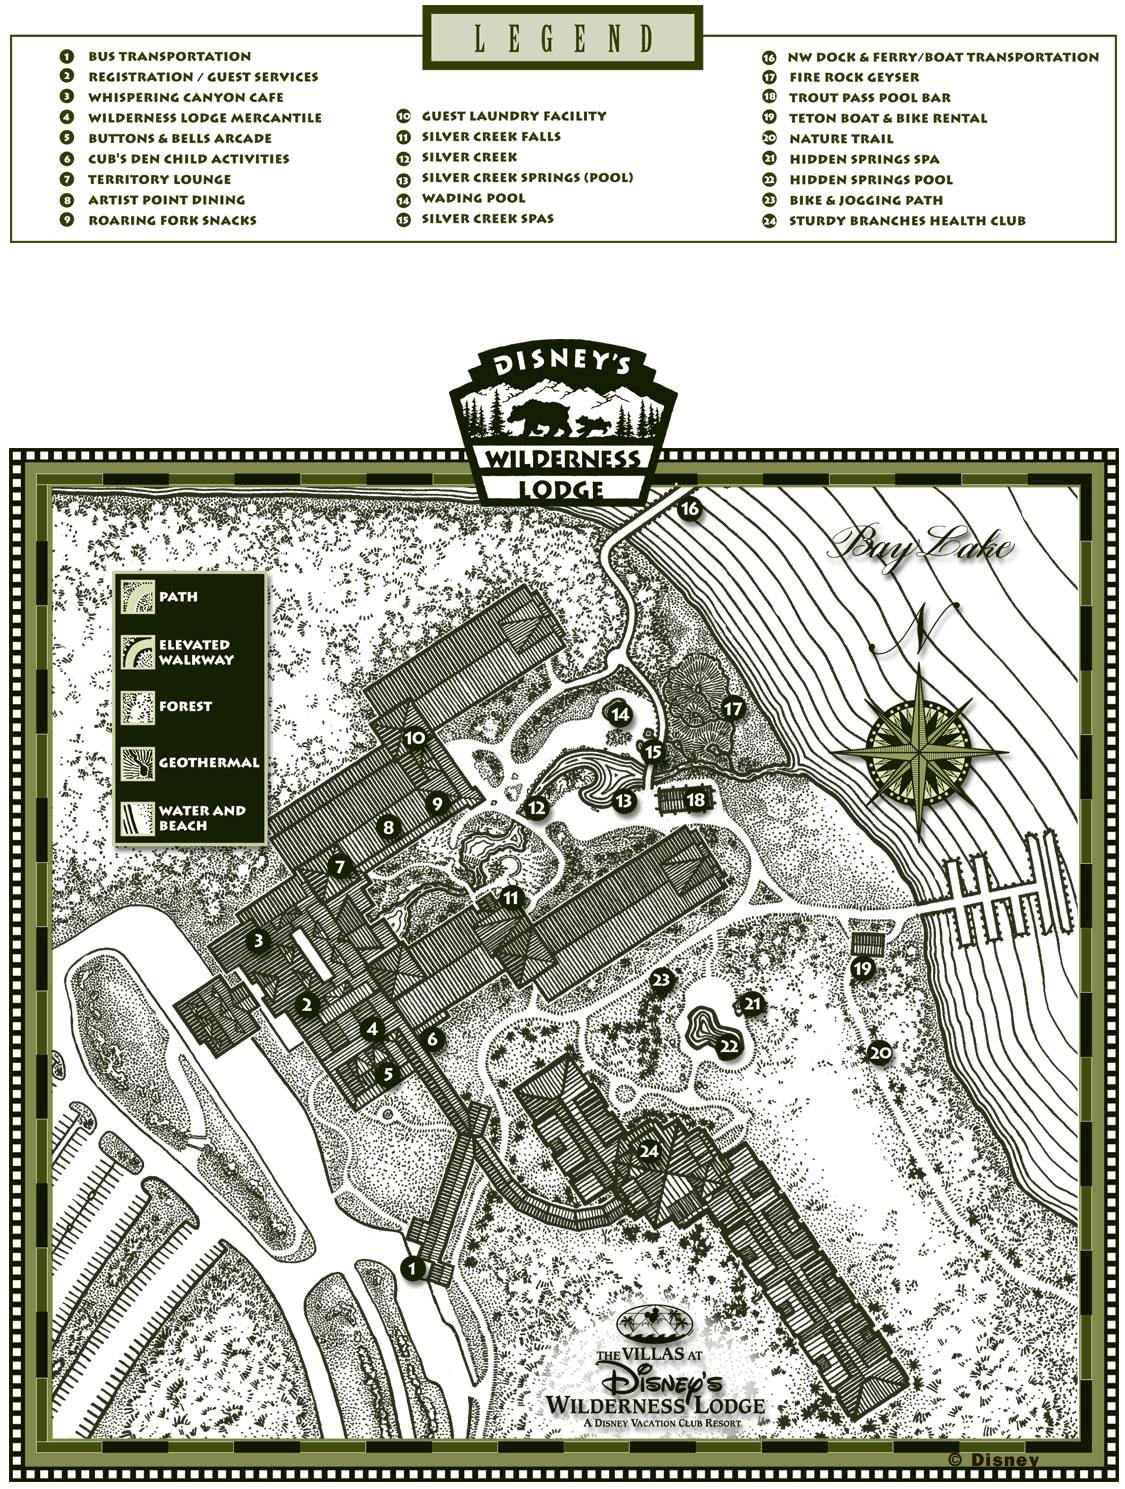 boulder ridge resort map1